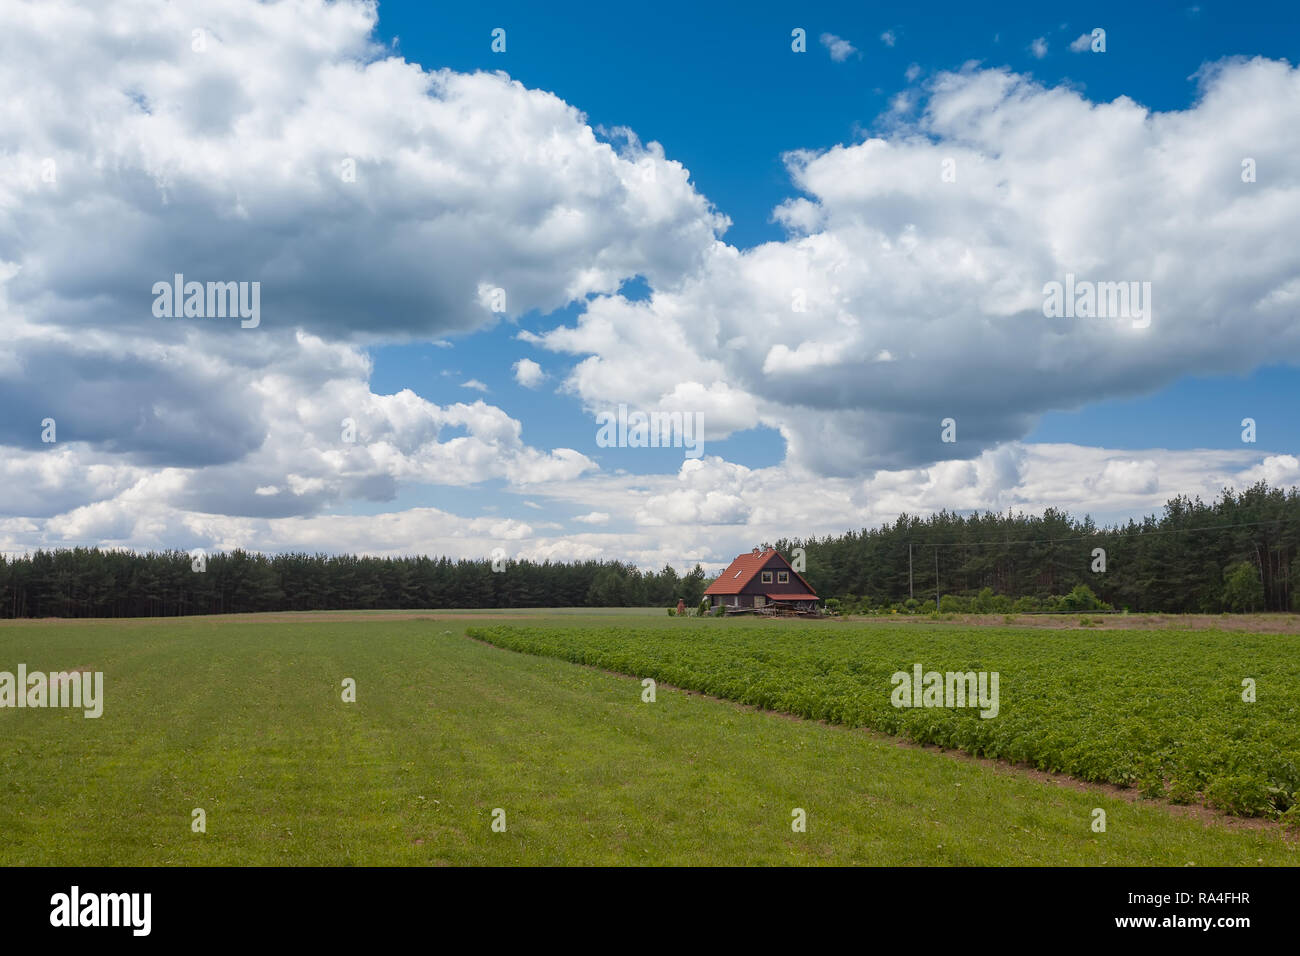 Rural scenic landscape clouds sky field house - Stock Image